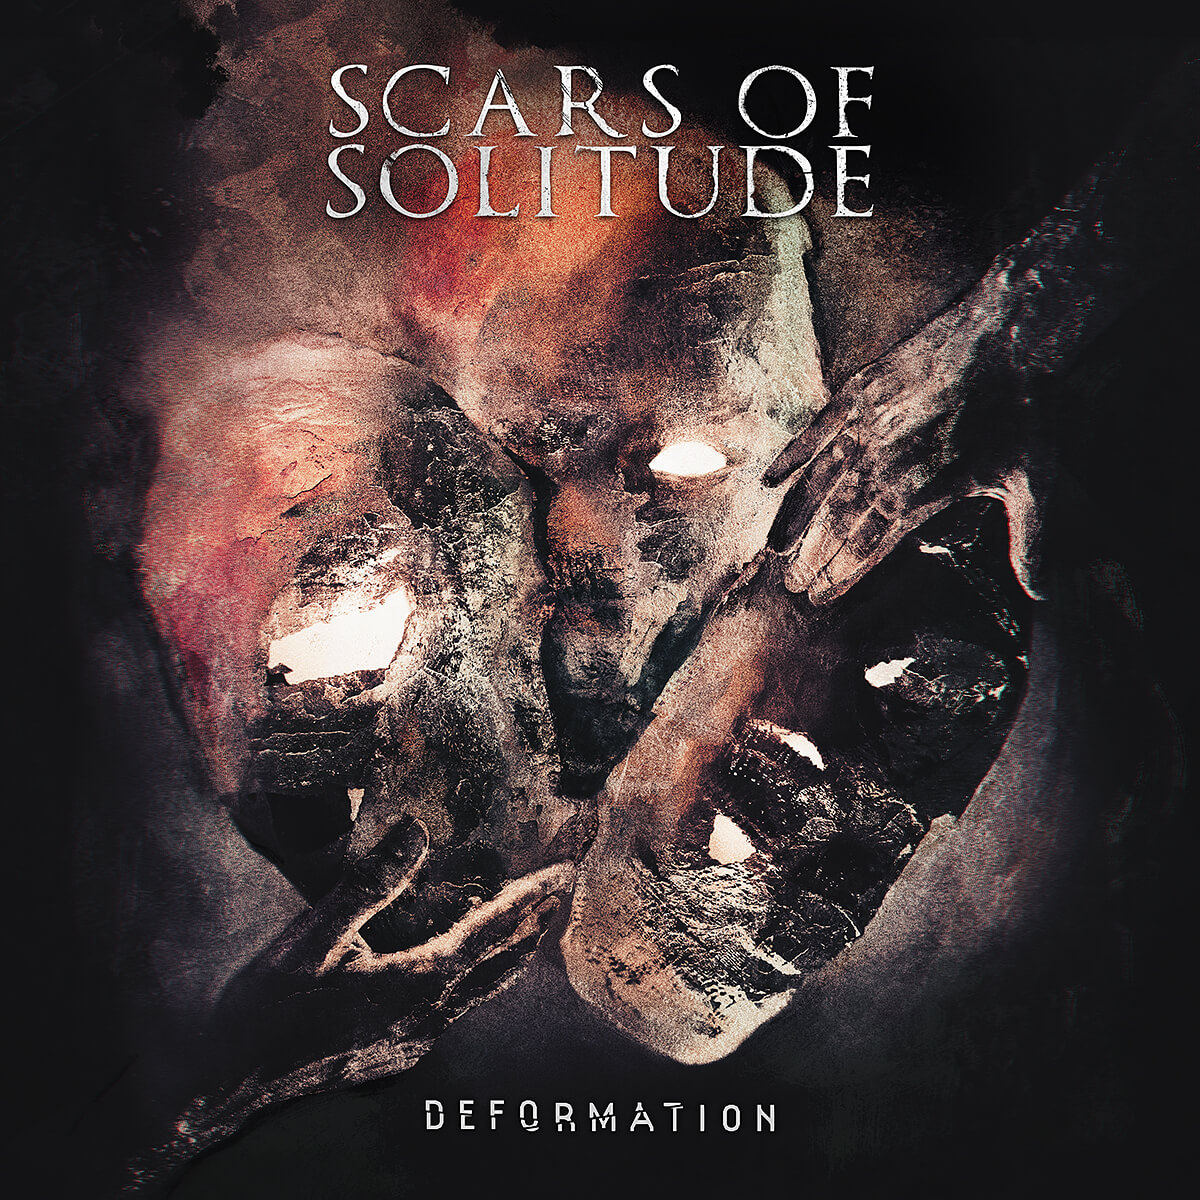 Scars of Solitude – Deformation